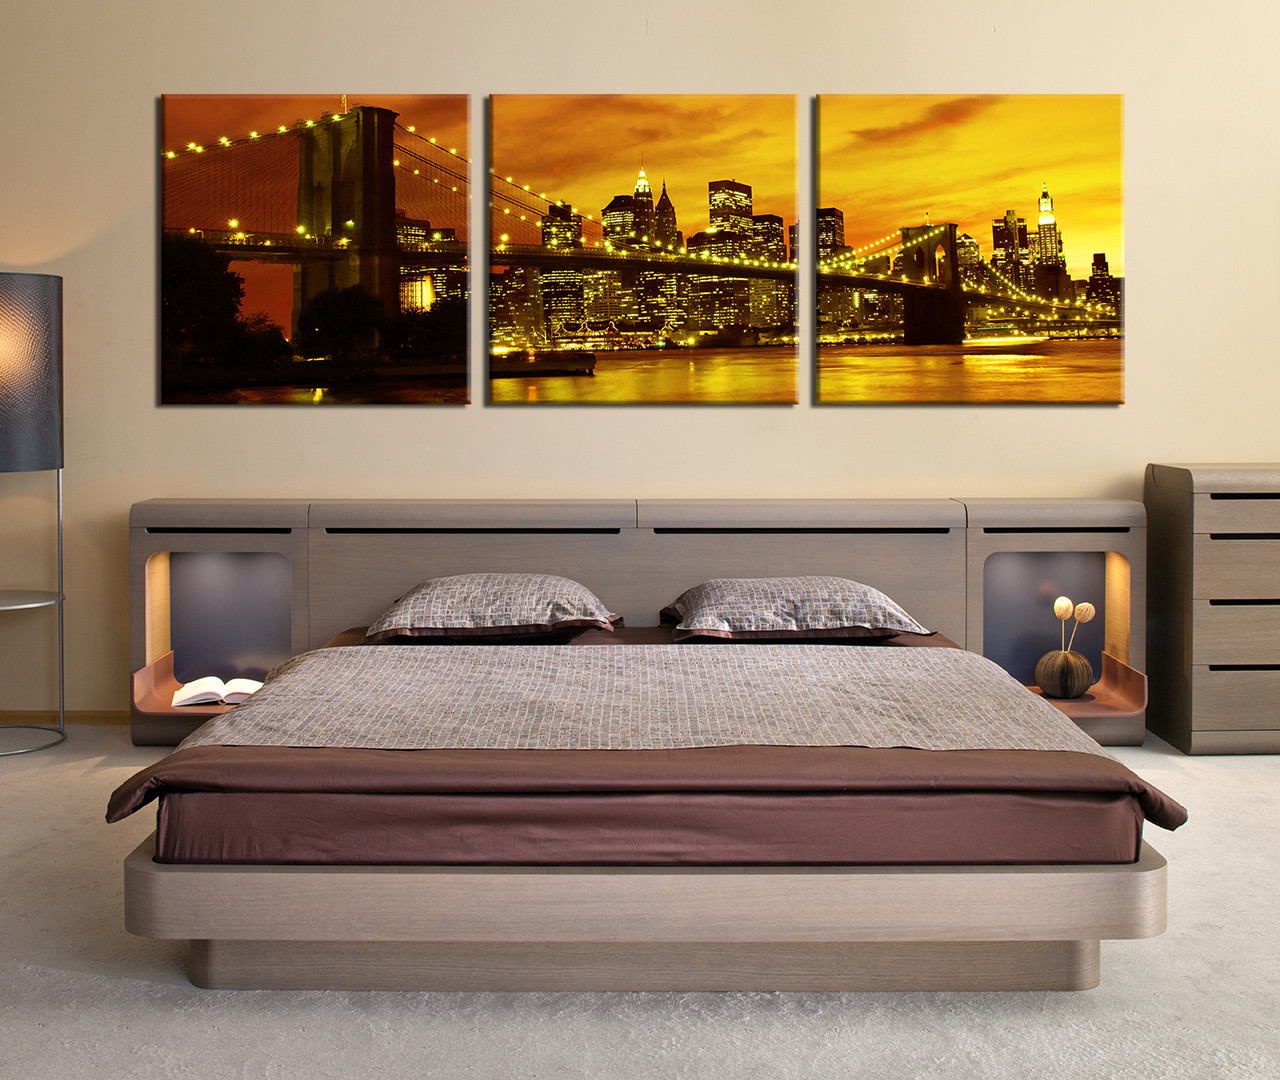 Large Framed Wall Art New York City Landscape Sunset: 3 Piece Multi Panel Canvas, City Huge Canvas Art, New York